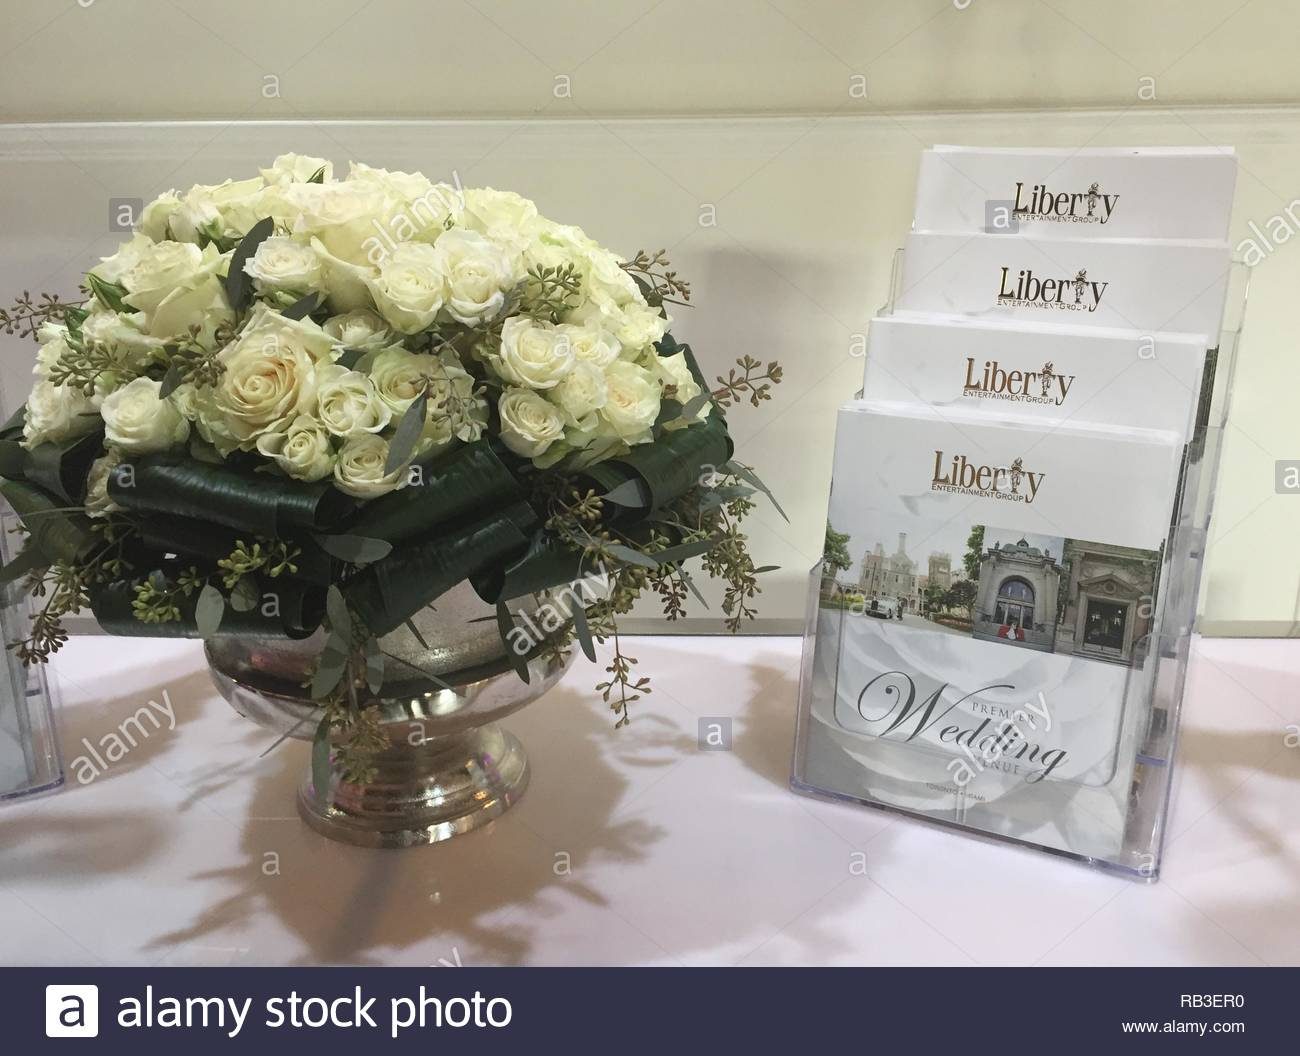 Flowers by brochures for wedding planning in Toronto, Ontario, Canada. - Stock Image